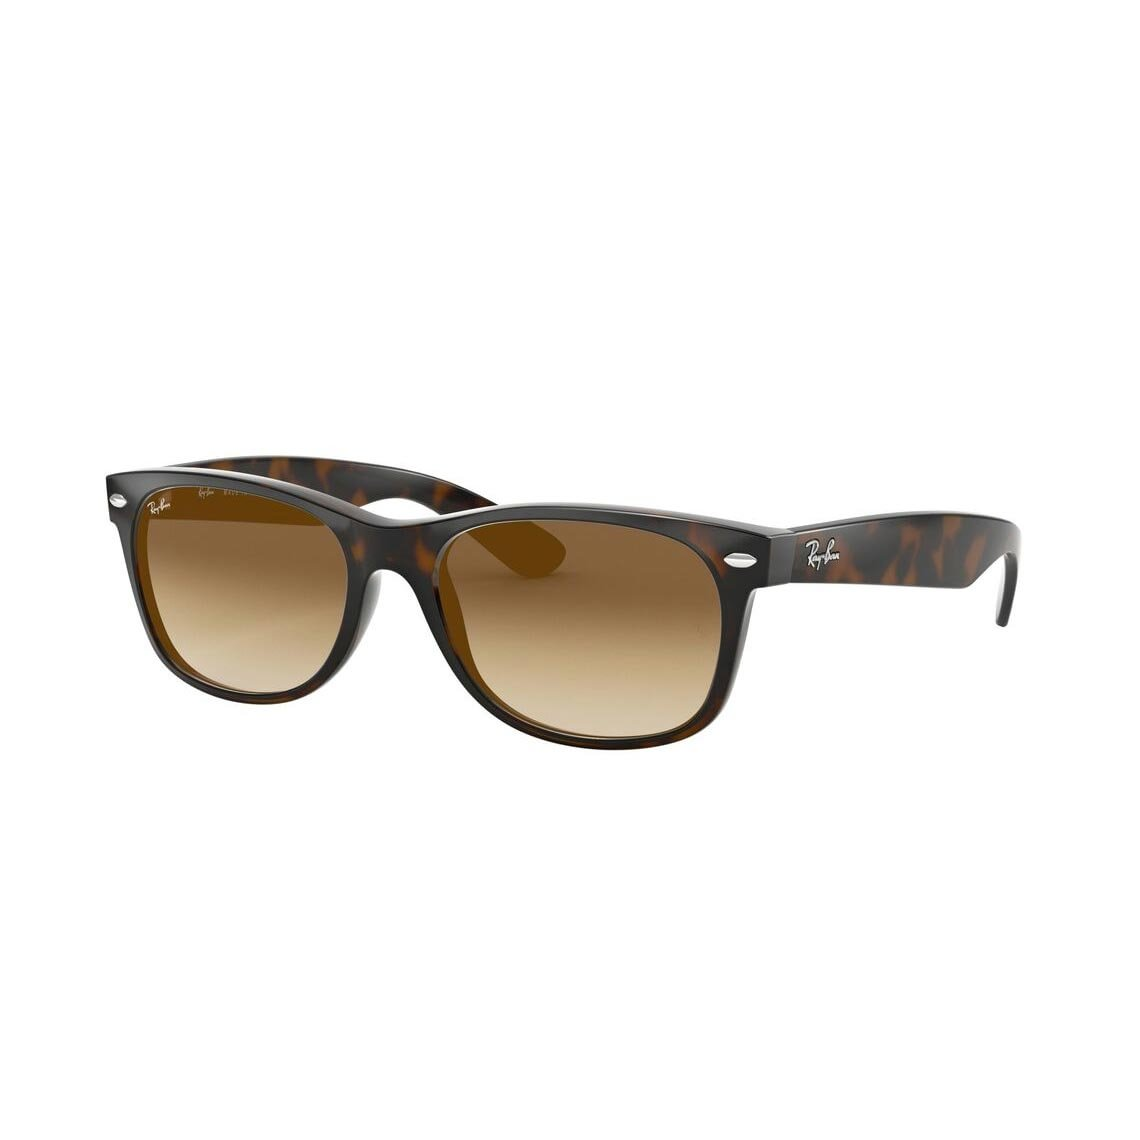 Ray-Ban New Wayfarer RB2132 710/51 58